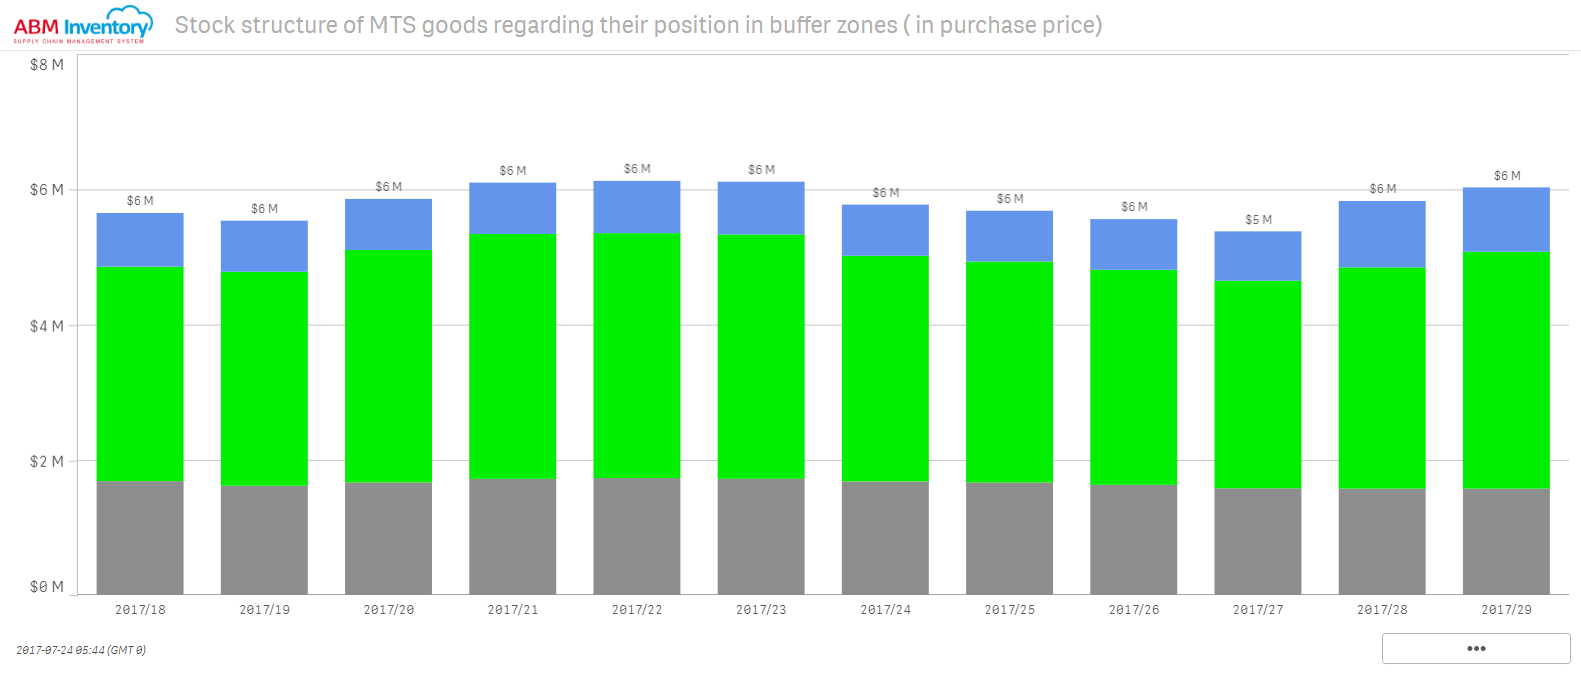 View stock structure of MTS goods regarding their position in the buffer zone